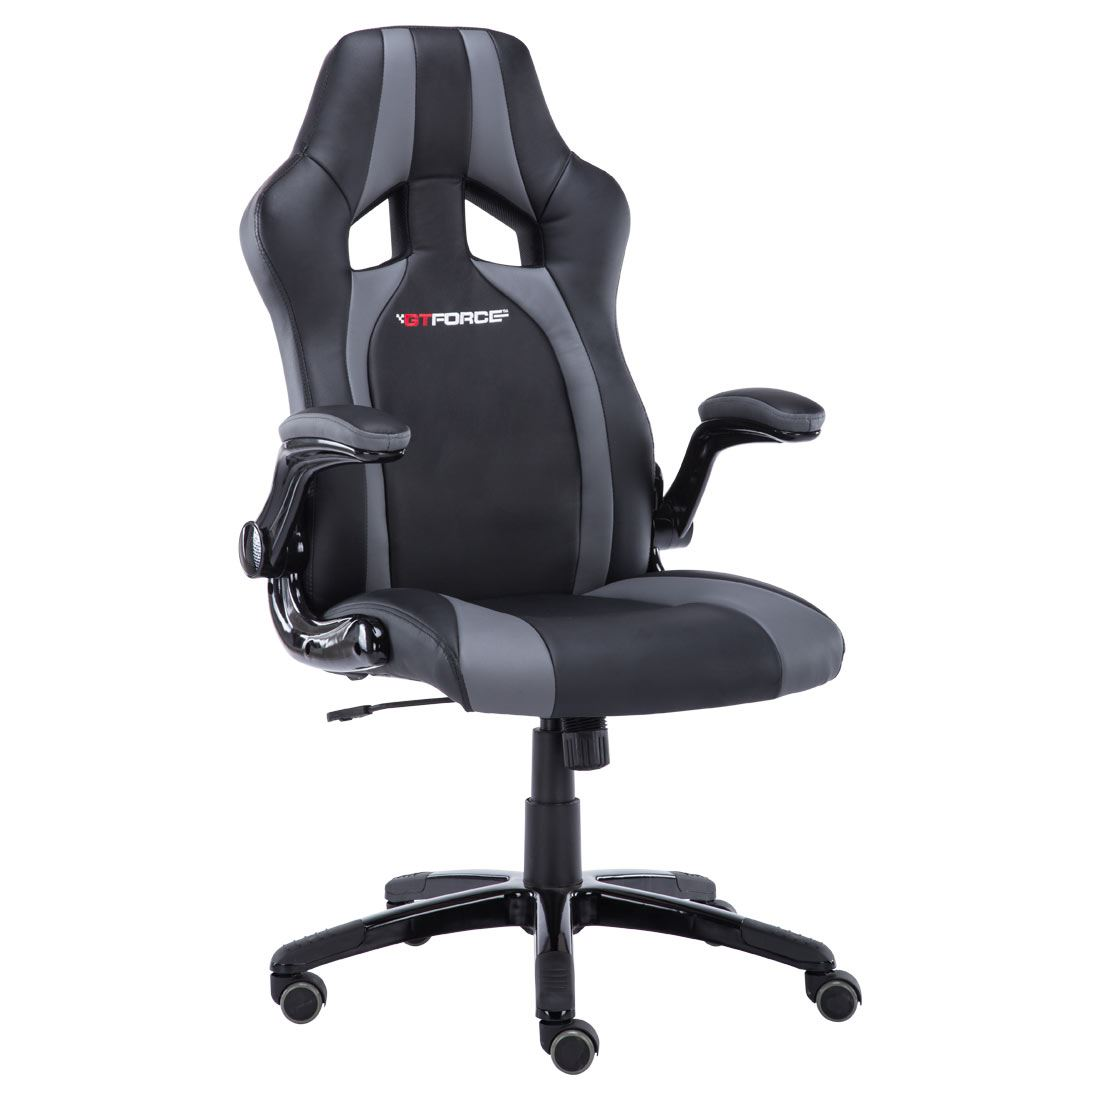 gray black sport racing car office chair leather gaming desk ebay